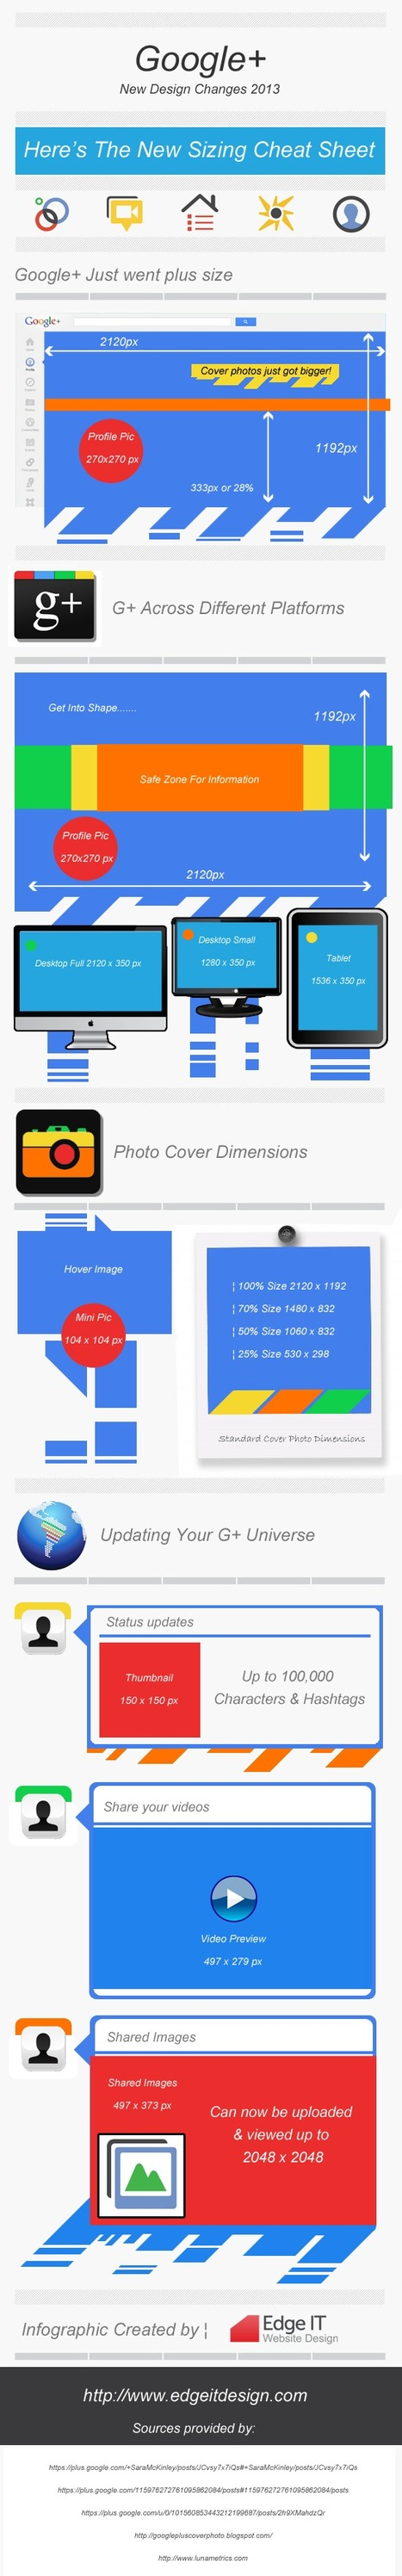 Google+ Design Cheat Sheet [Infographic] | iEduc | Scoop.it